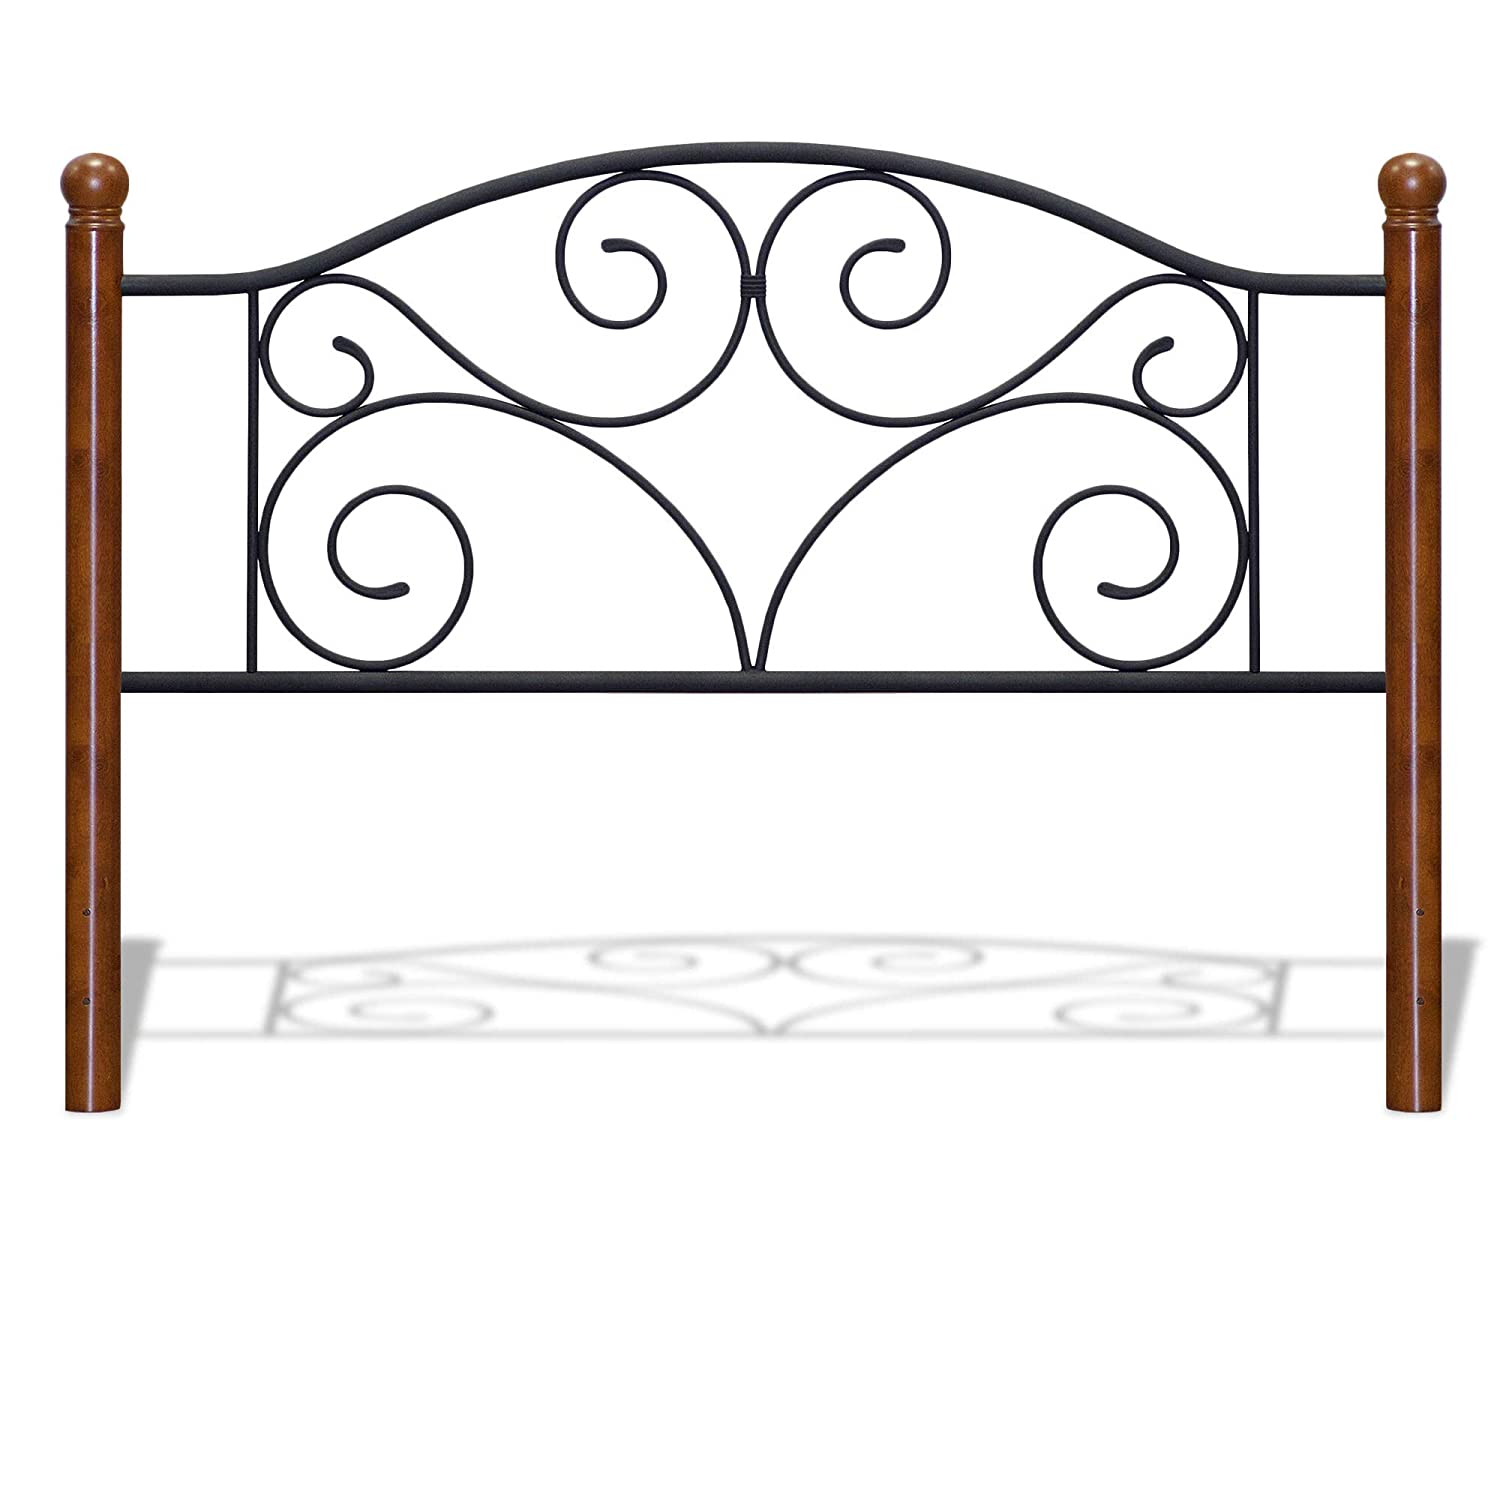 Queen Fashion Bed Group B92273 Doral Headboard with Dark Walnut Wood Posts and Metal Grill, Matte Black, Twin